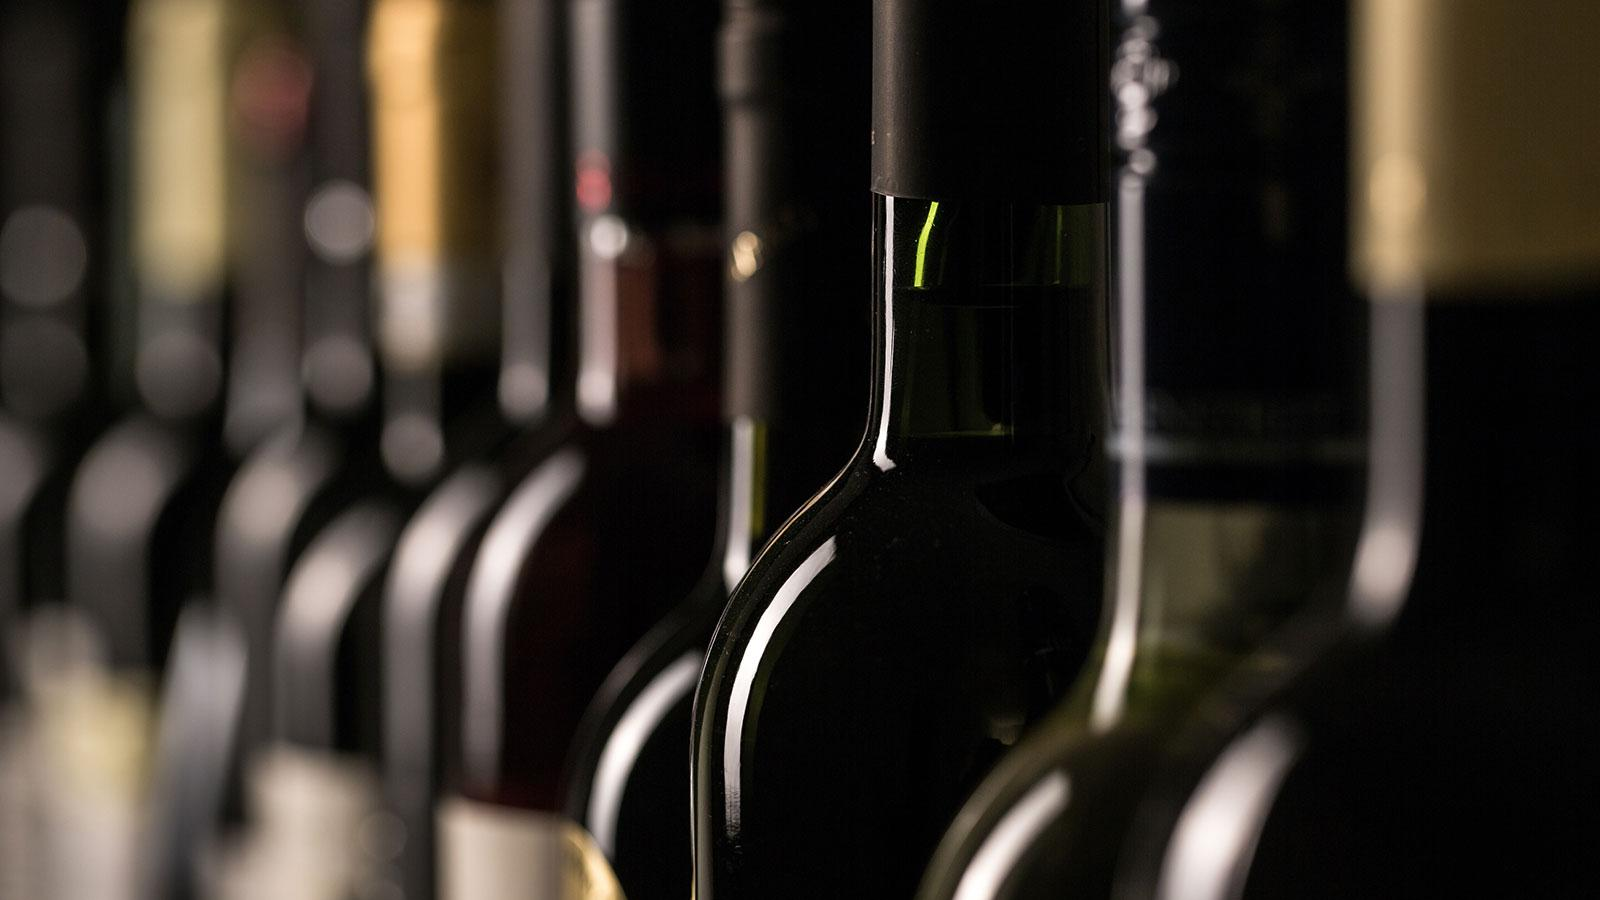 Radioactive Isotopes in California Wines? Don't Panic